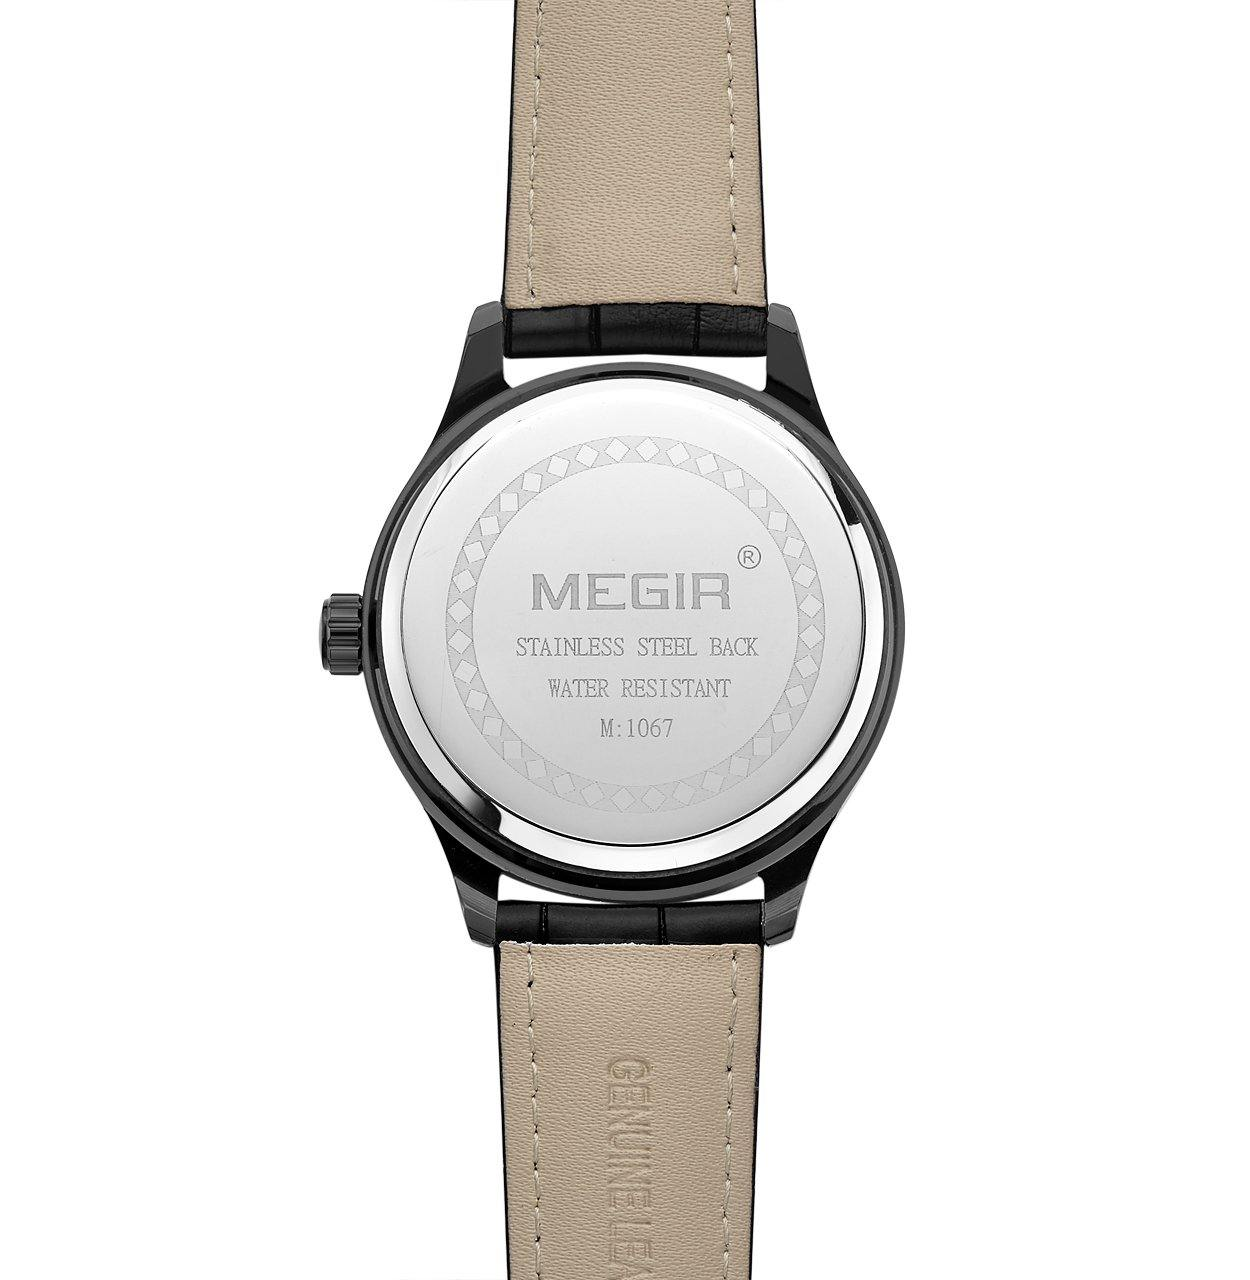 MEGIR 2017 New men's watch top brand luxury 1067 - MEGIR